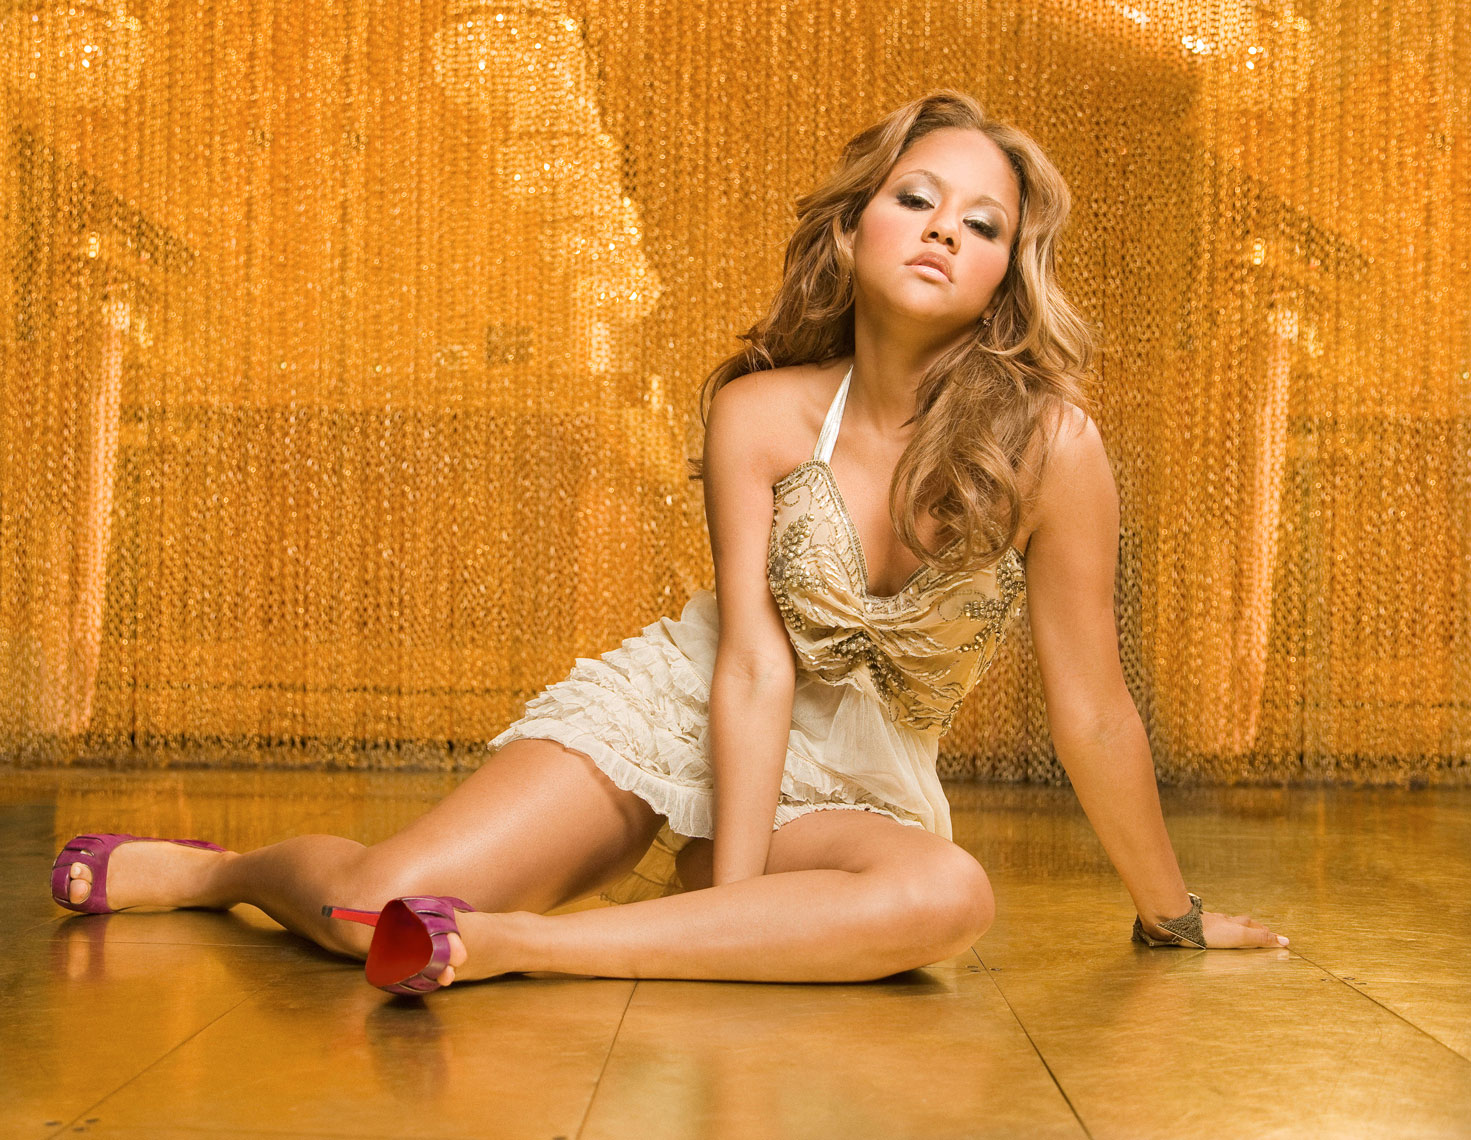 kat deluna,william heuberger fashion photographer,bill heuberger,NYC,portrait,20080521_KD__0110_XG_MASTER